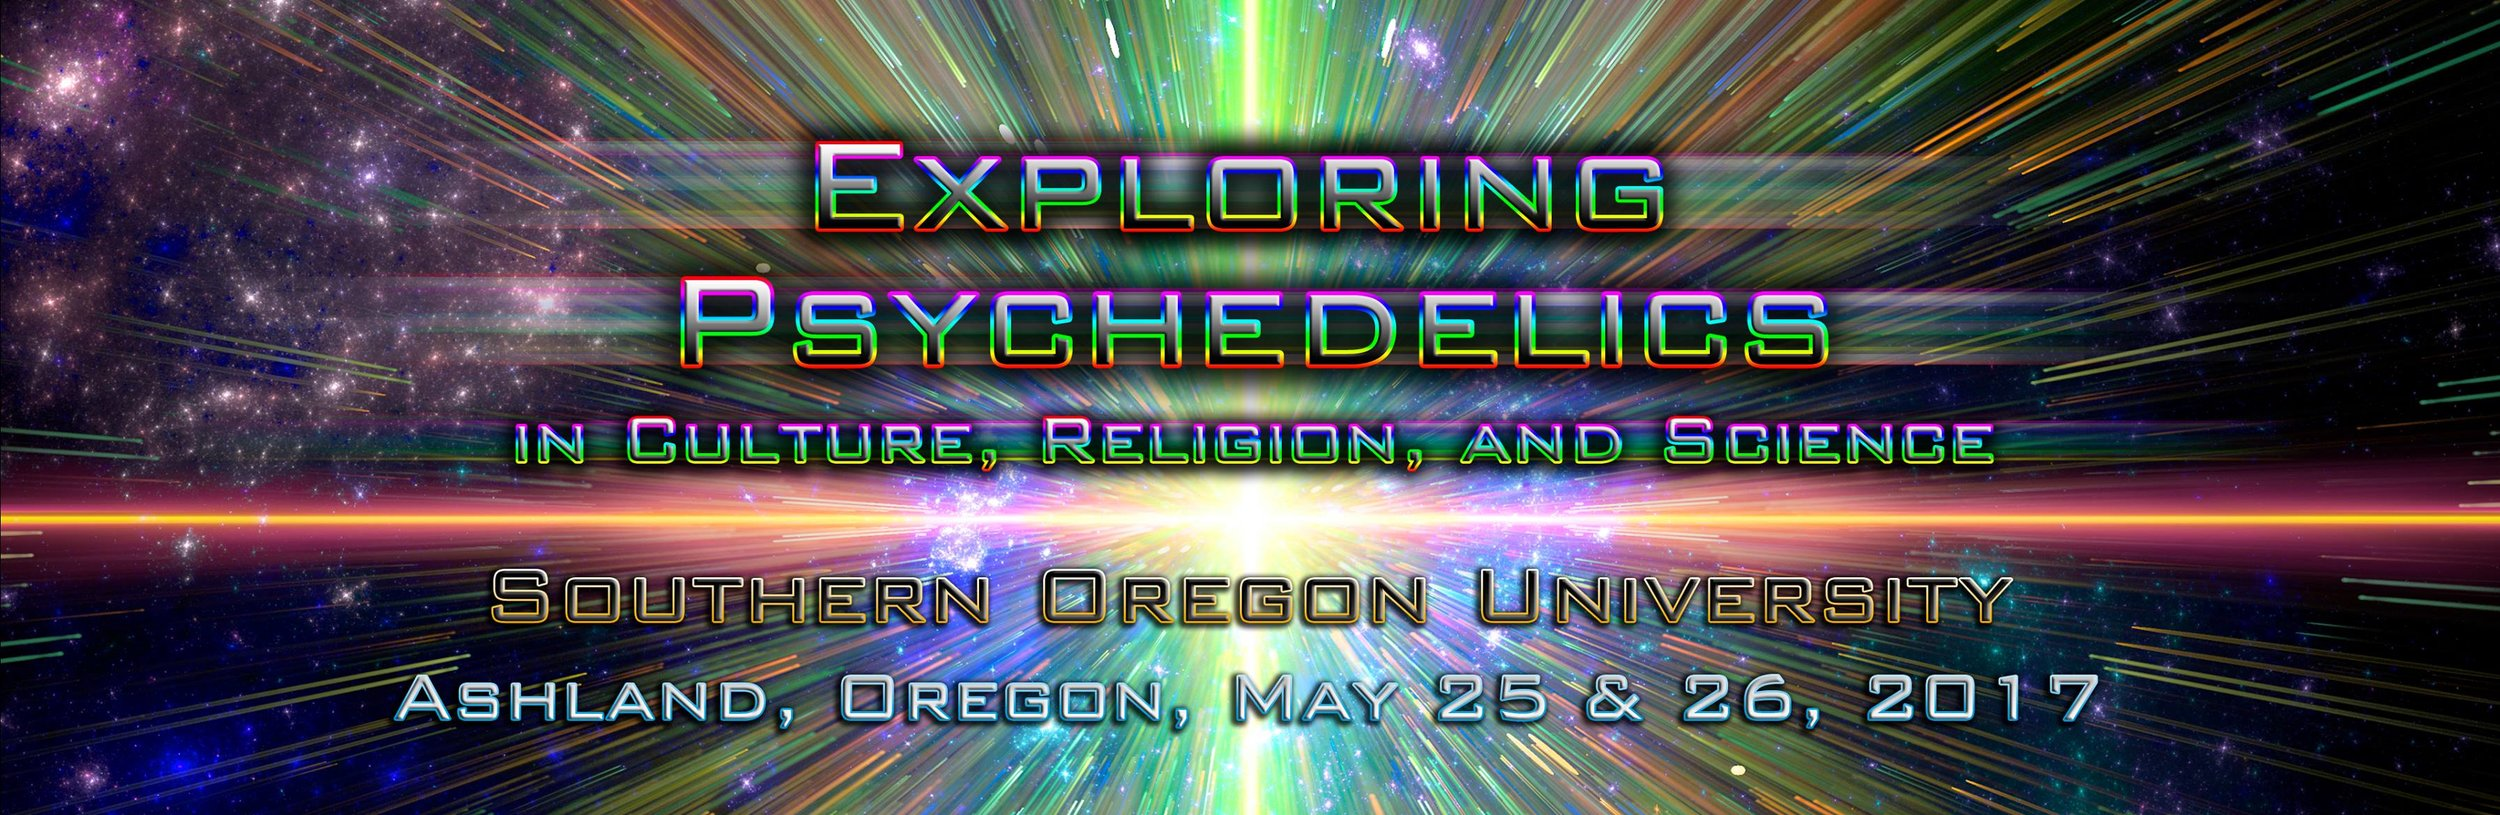 Exploring Psychedelics Conference martin ball ashland oregon